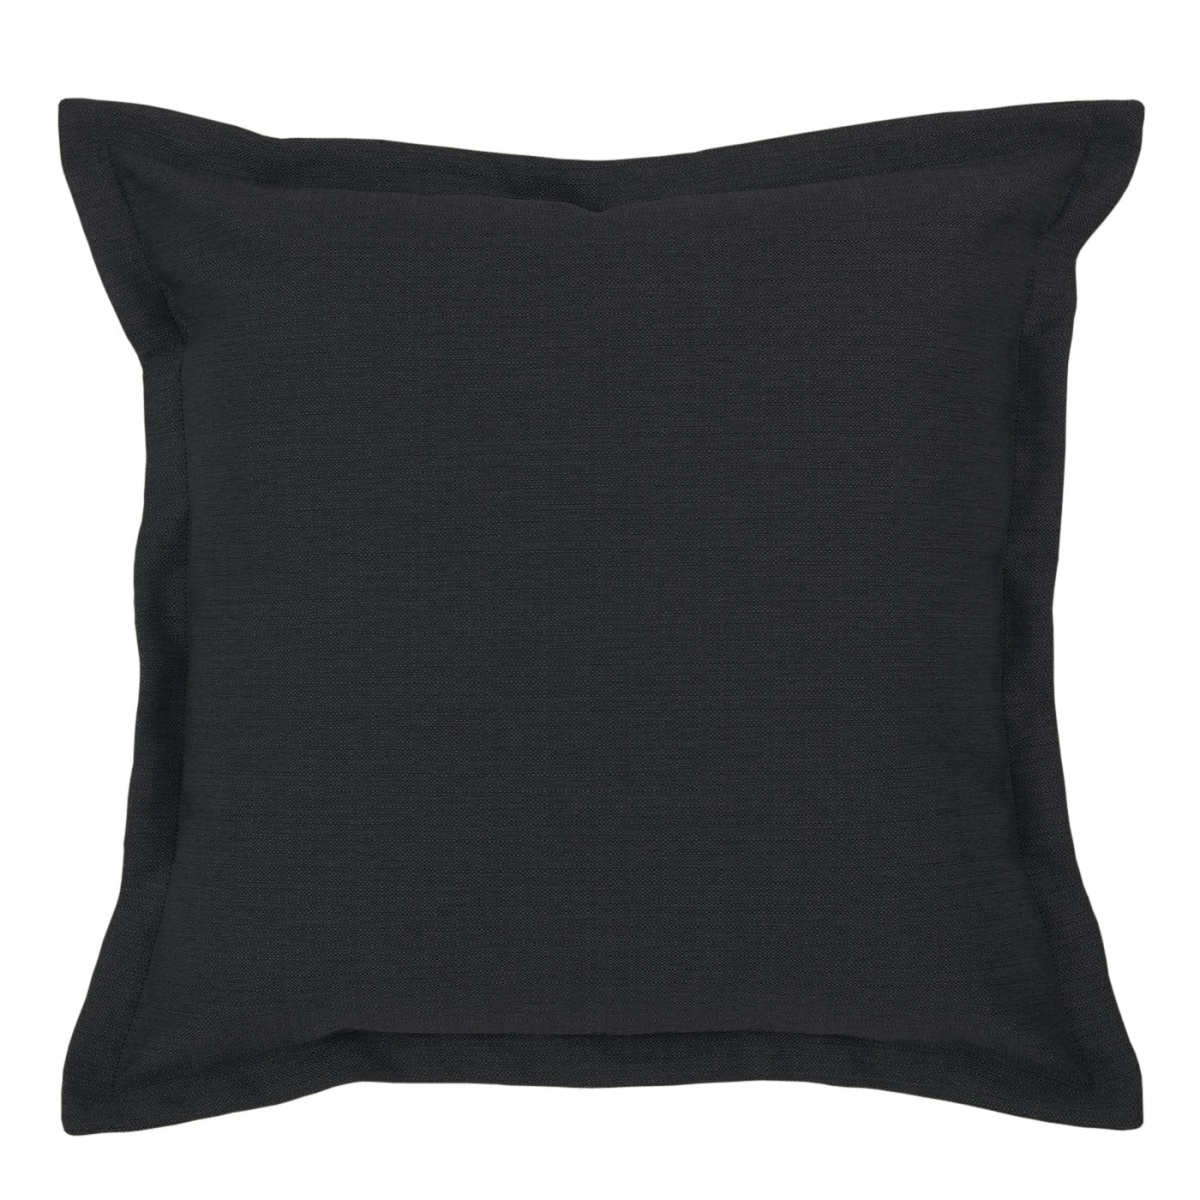 Vegas Nero Cushion with Flange - 45x45cm